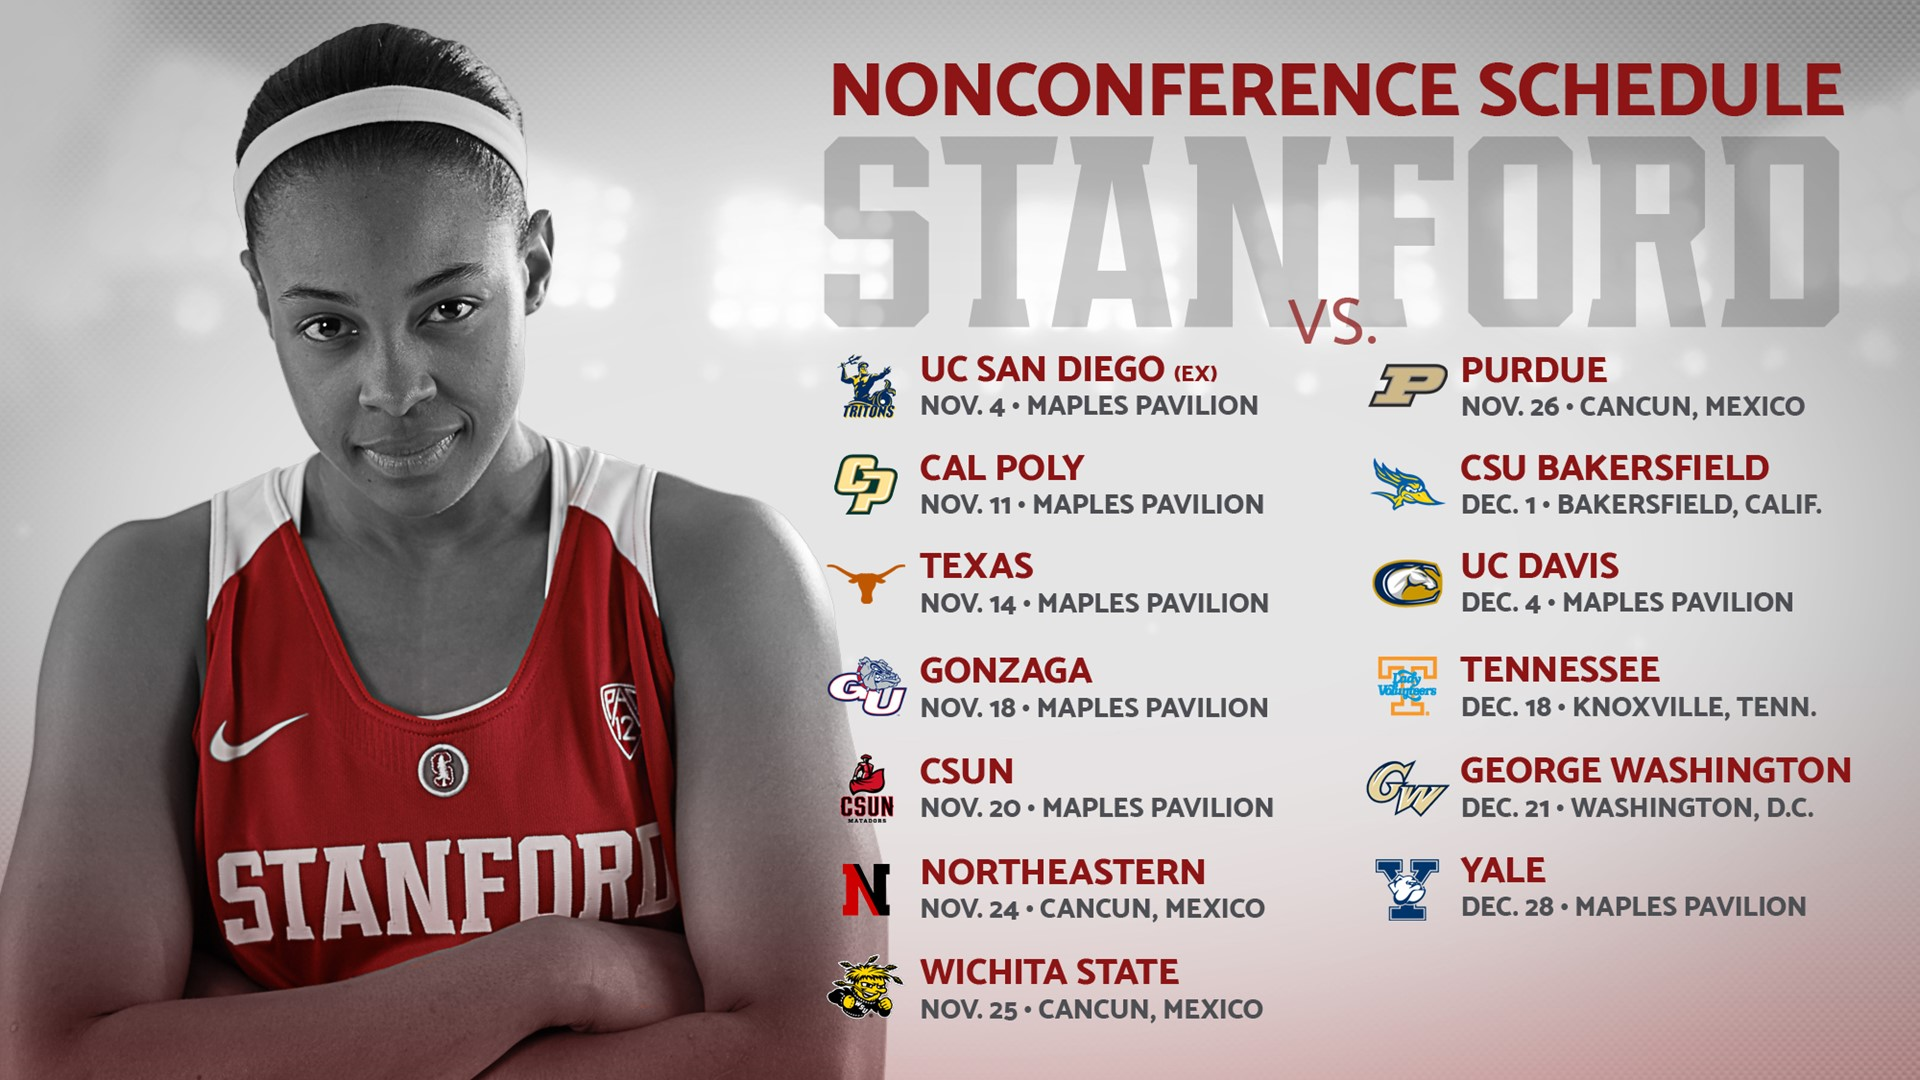 Stanford's 2016-17 non-conference schedule features Texas, Gonzaga, Tenn., GWU and a sister vs. sister exhibition